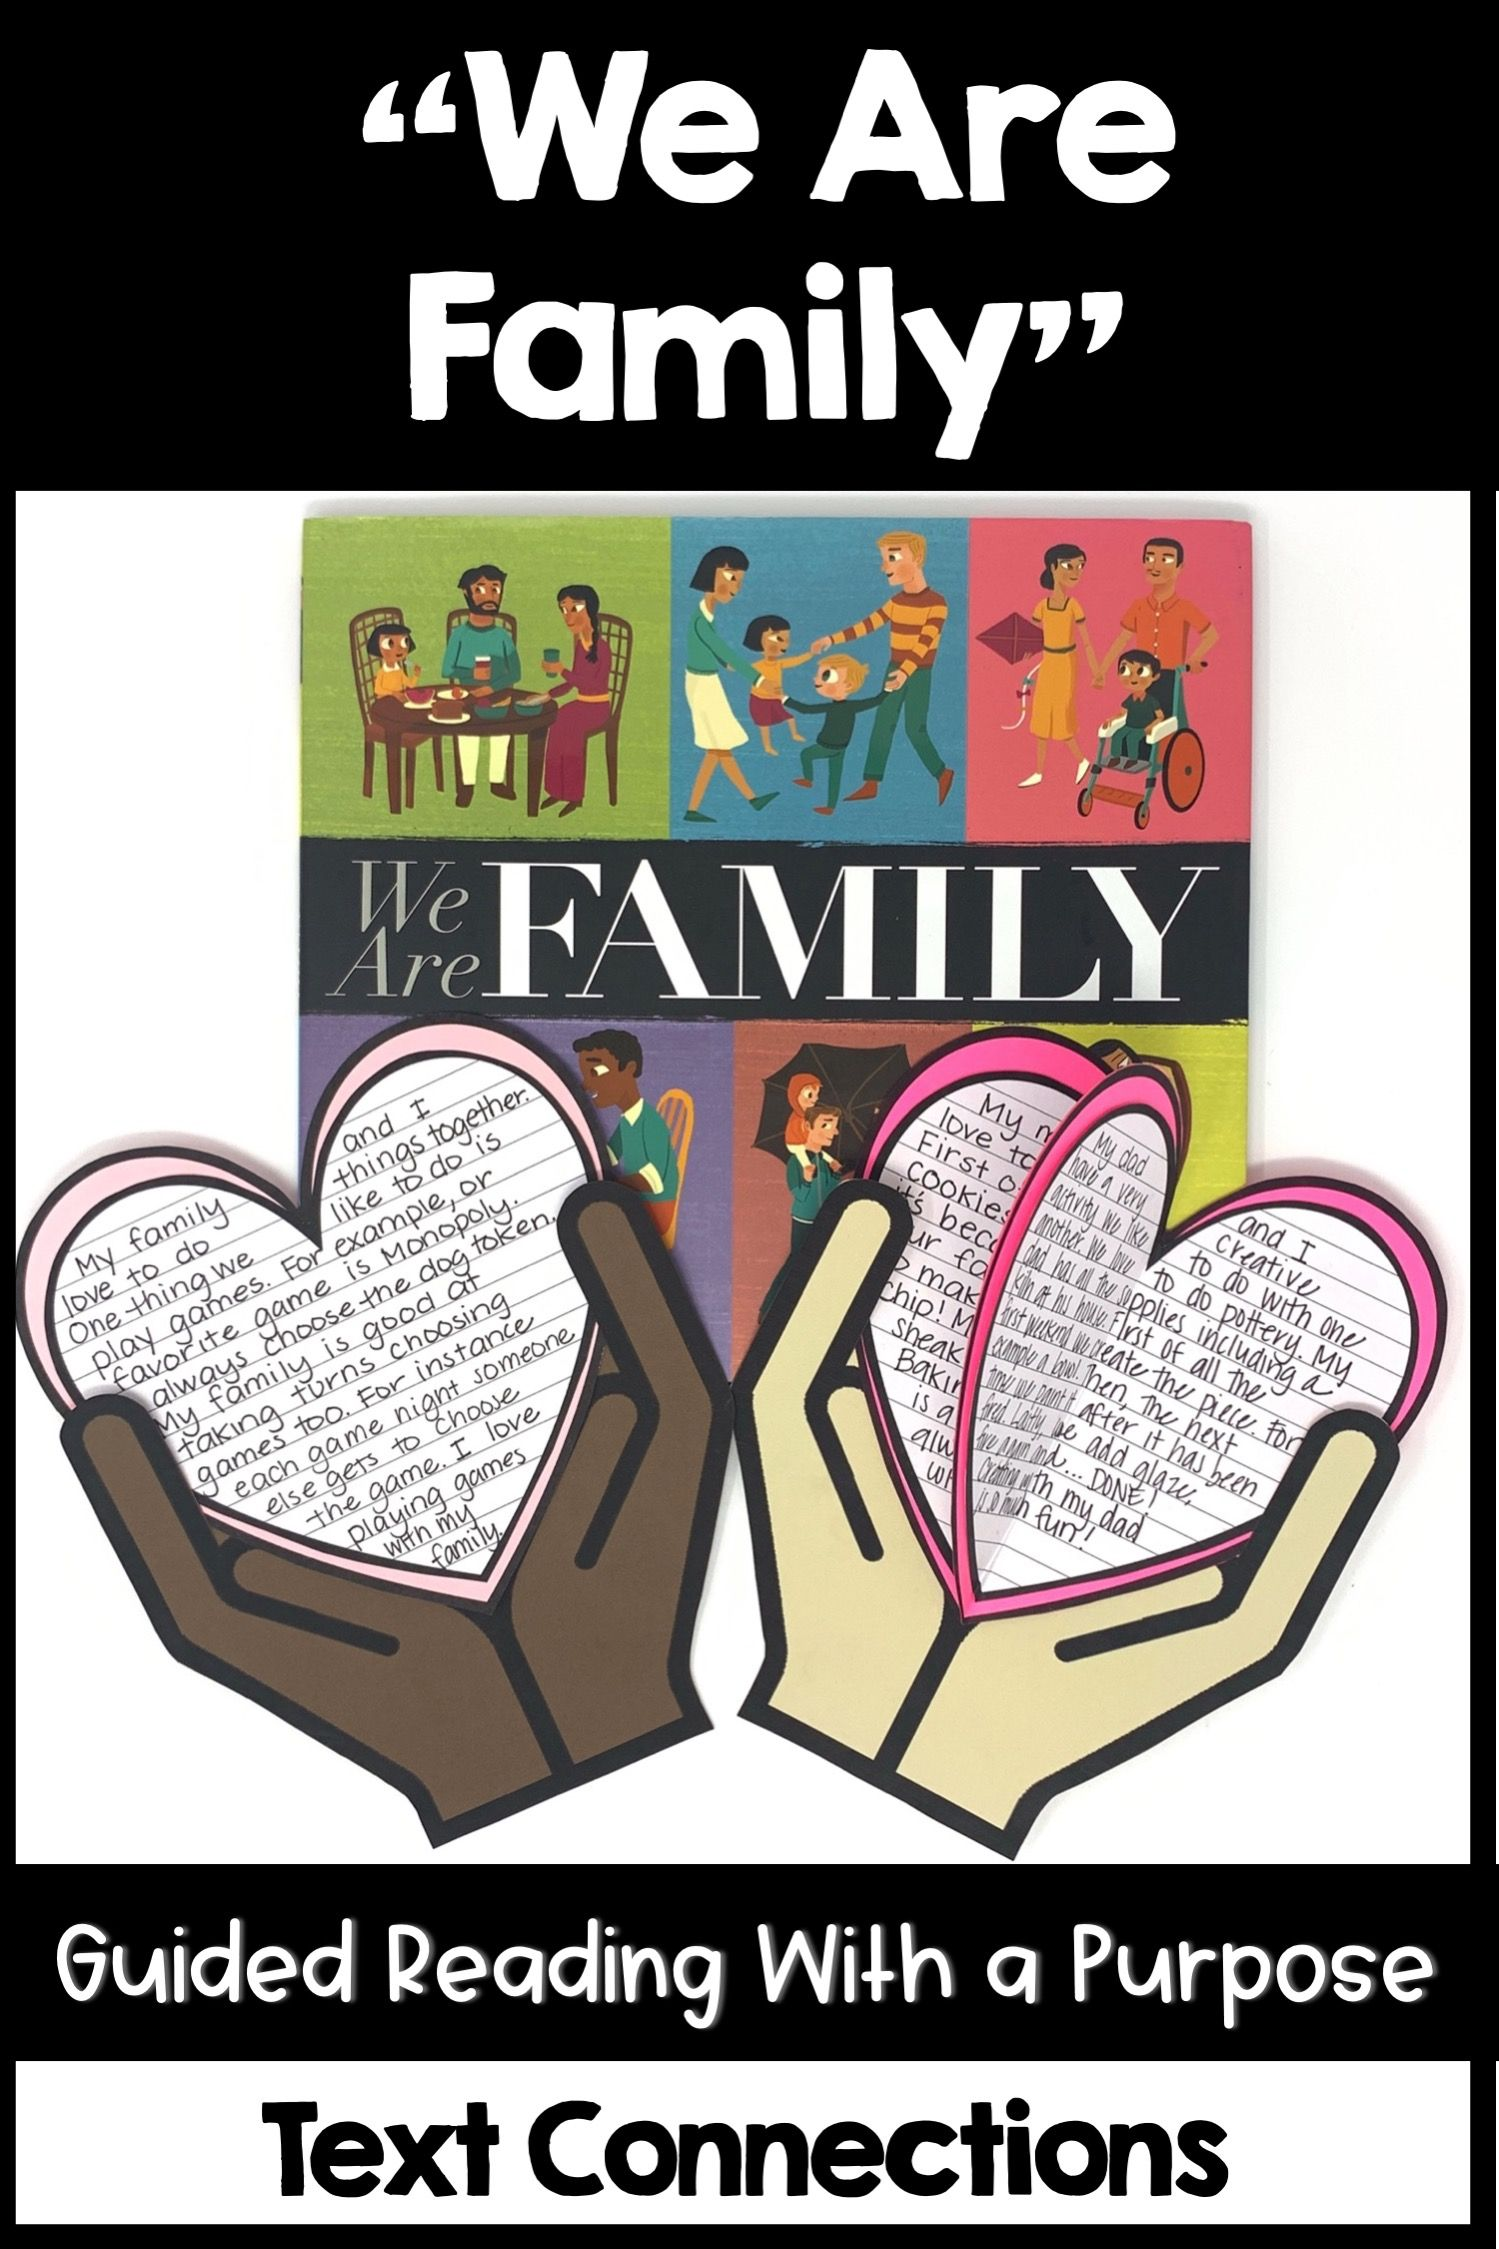 We Are Family Guided Reading Text Connections